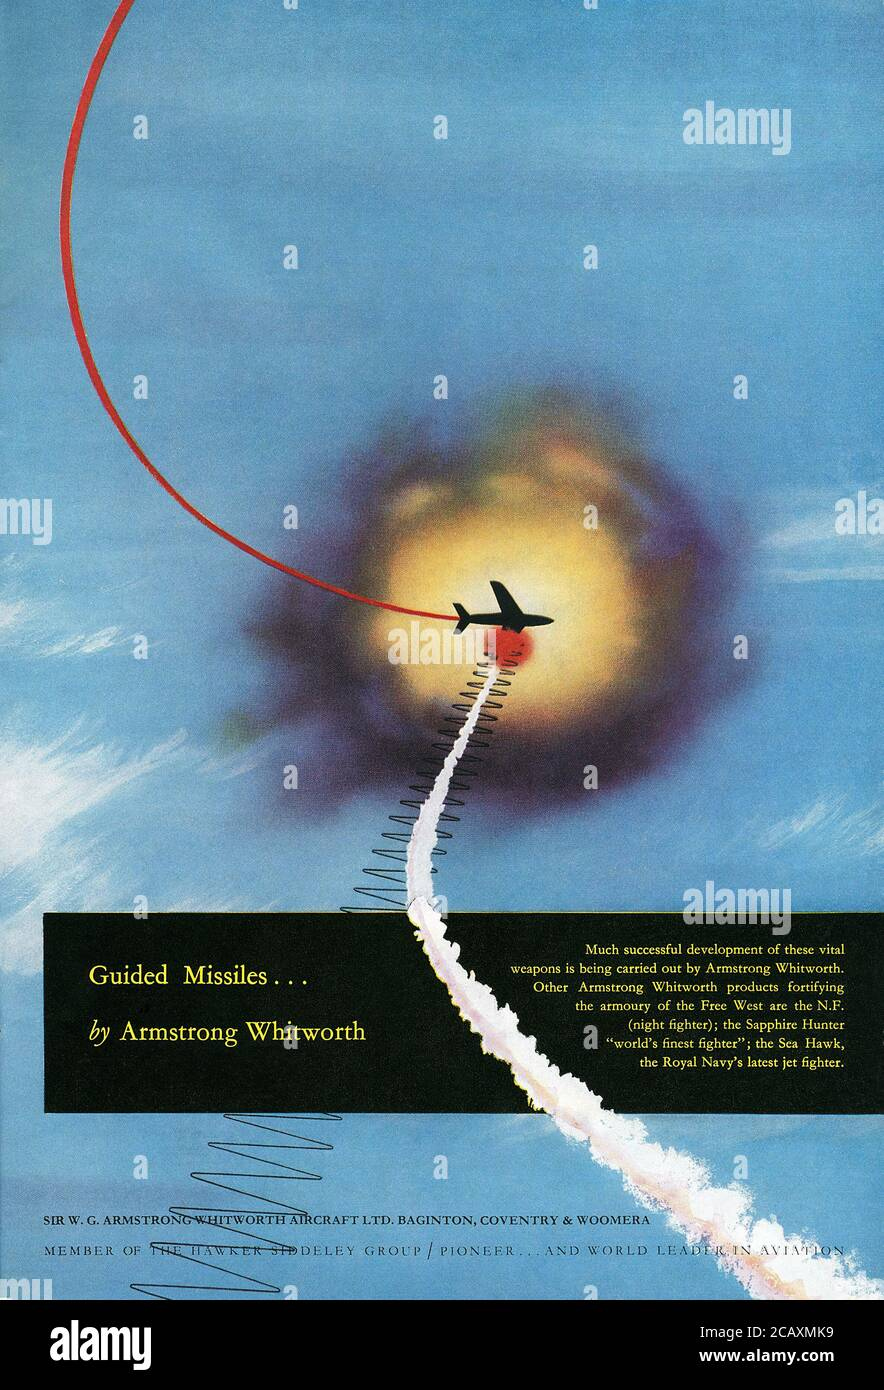 1950s British advertisement for guided missiles by Sir W. G. Armstrong Whitworth Aircraft Ltd. Stock Photo